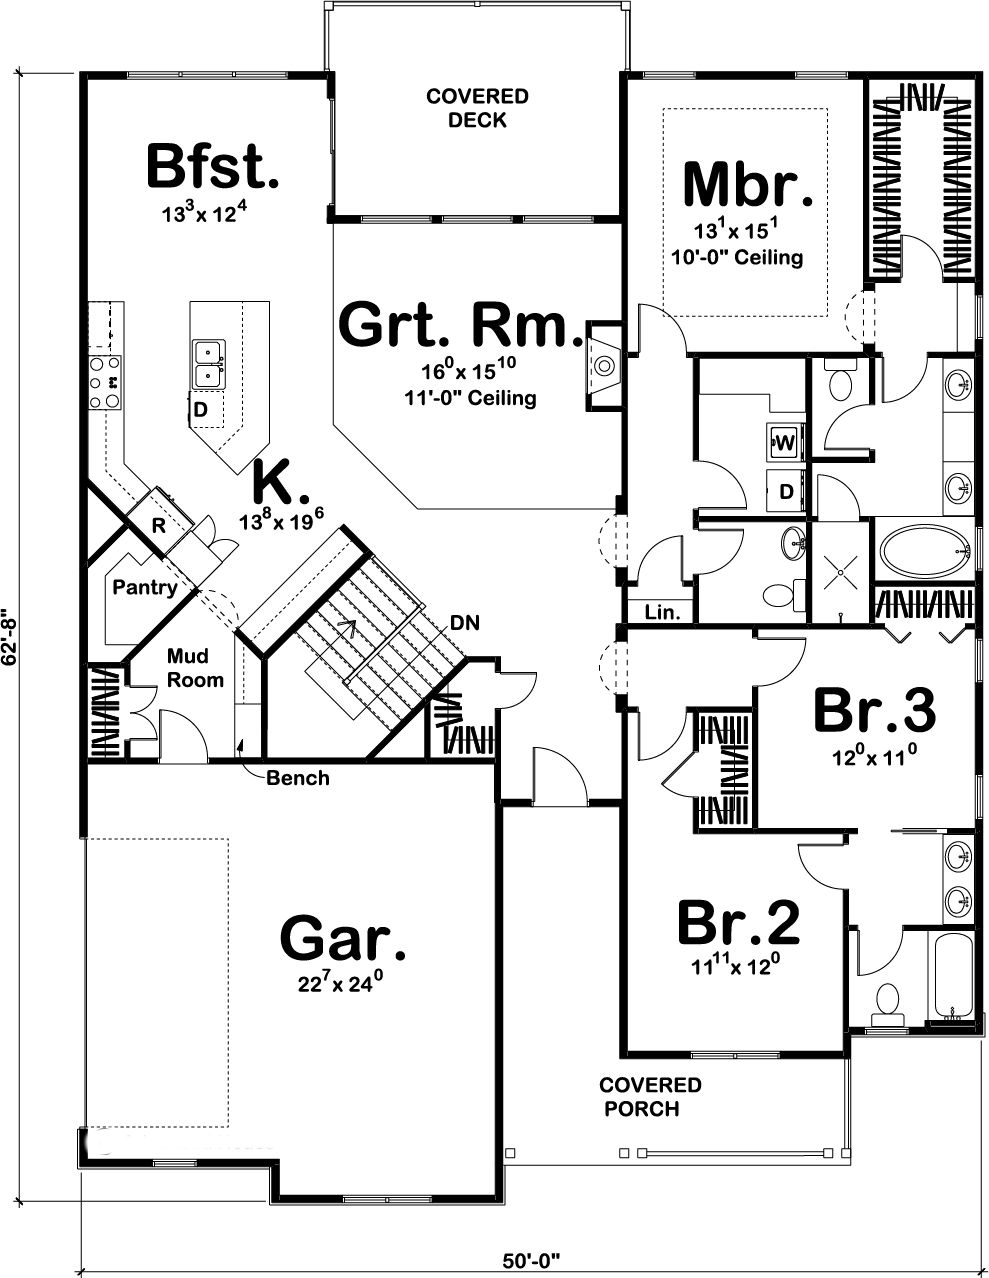 100 1195 main level house plans pinterest